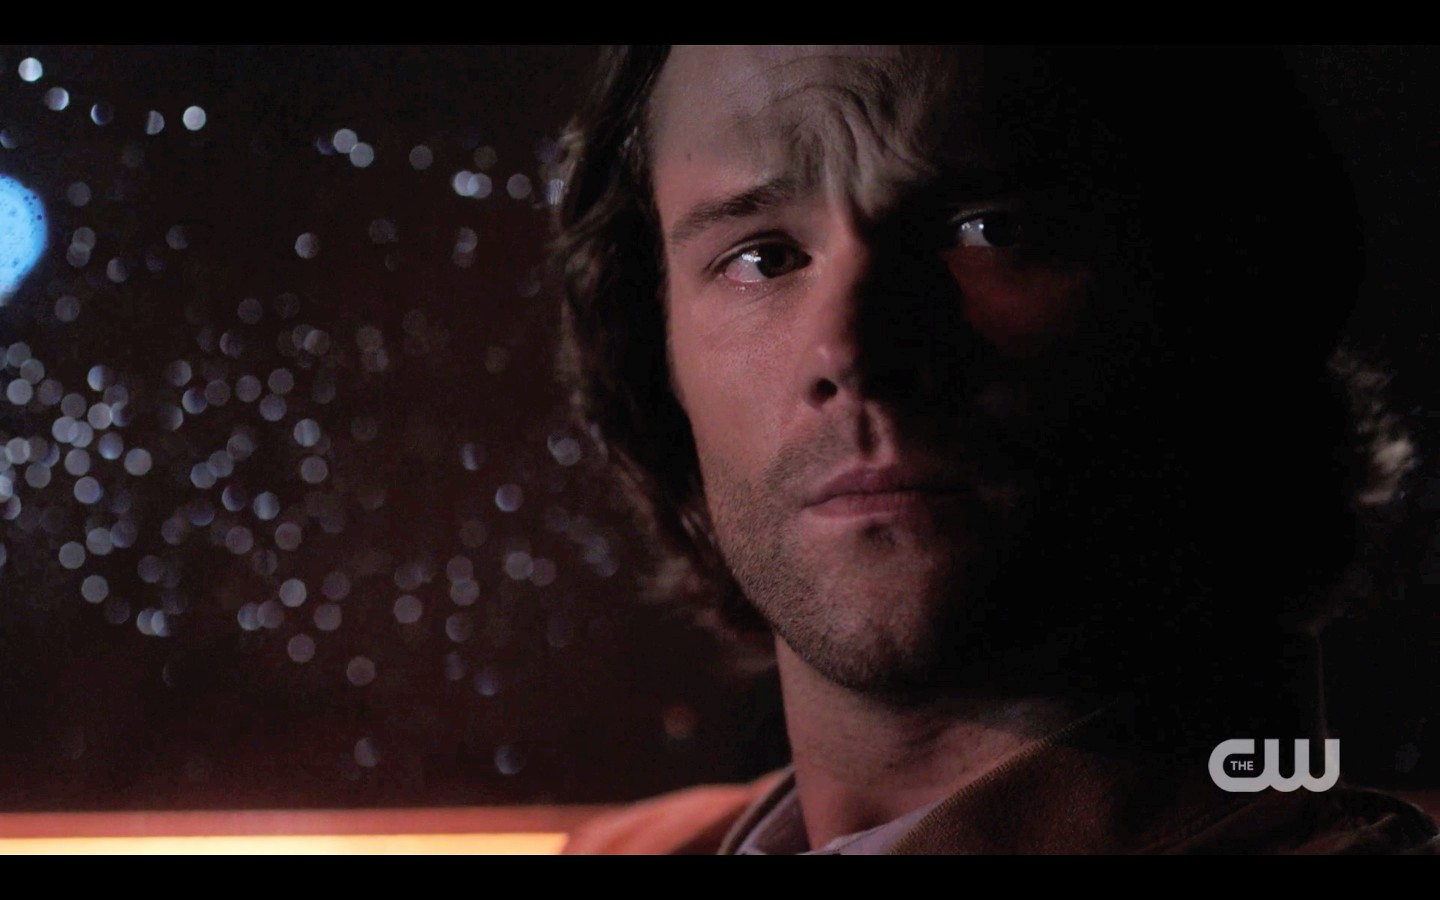 sam winchester giving dean hot sexy look mint condition